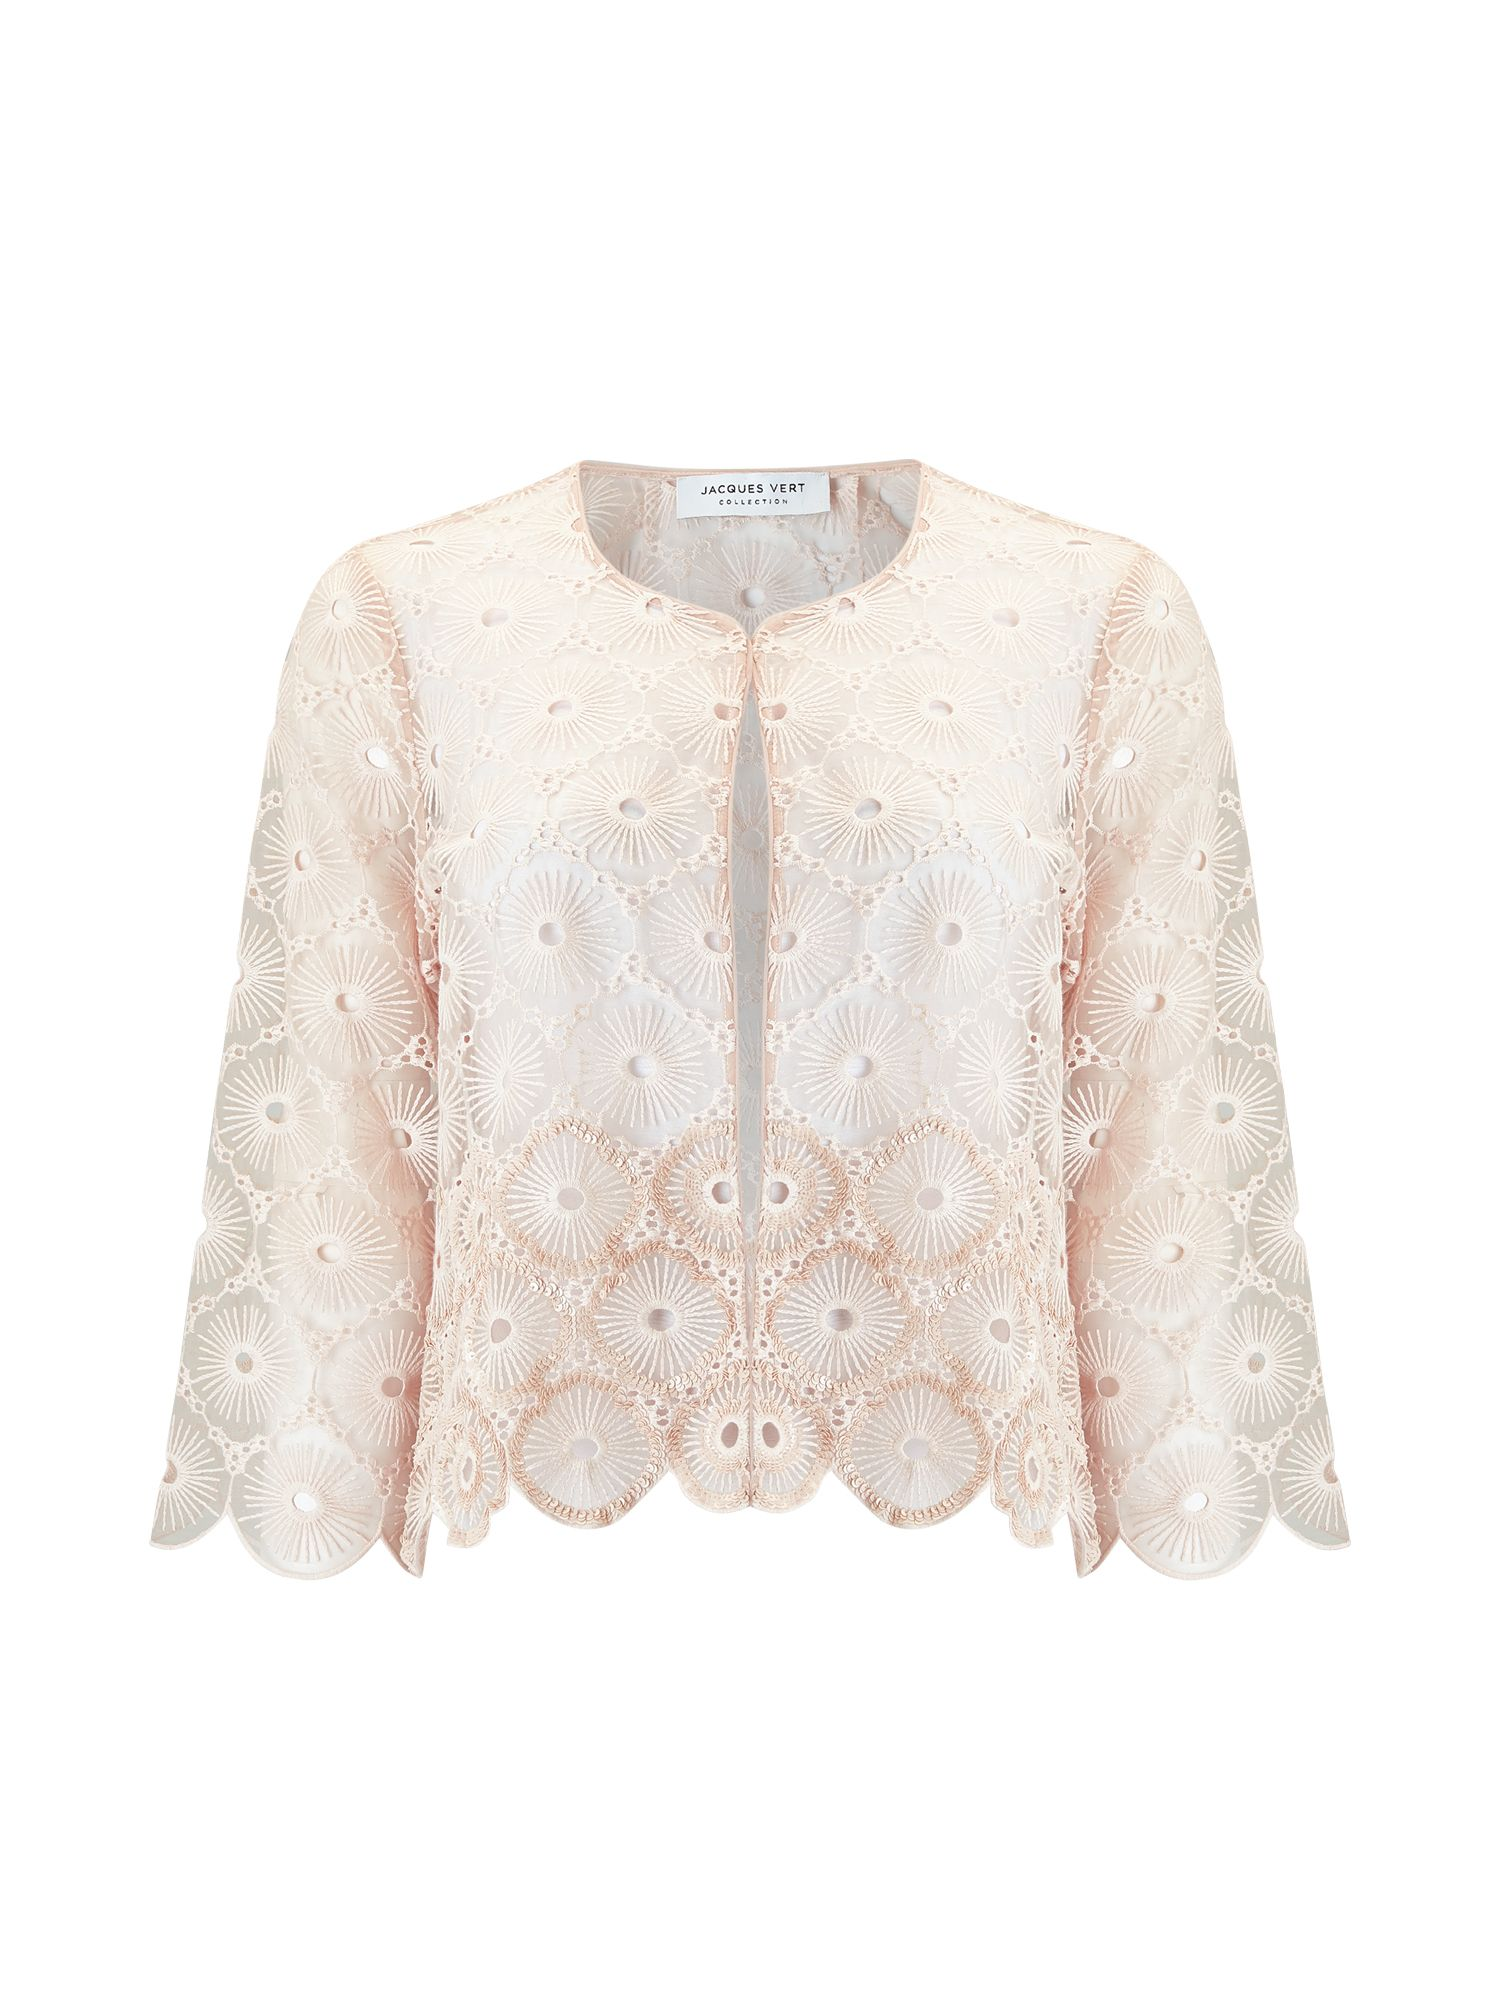 Jacques Vert Sequin Emb Anglaise Jacket, Neutral